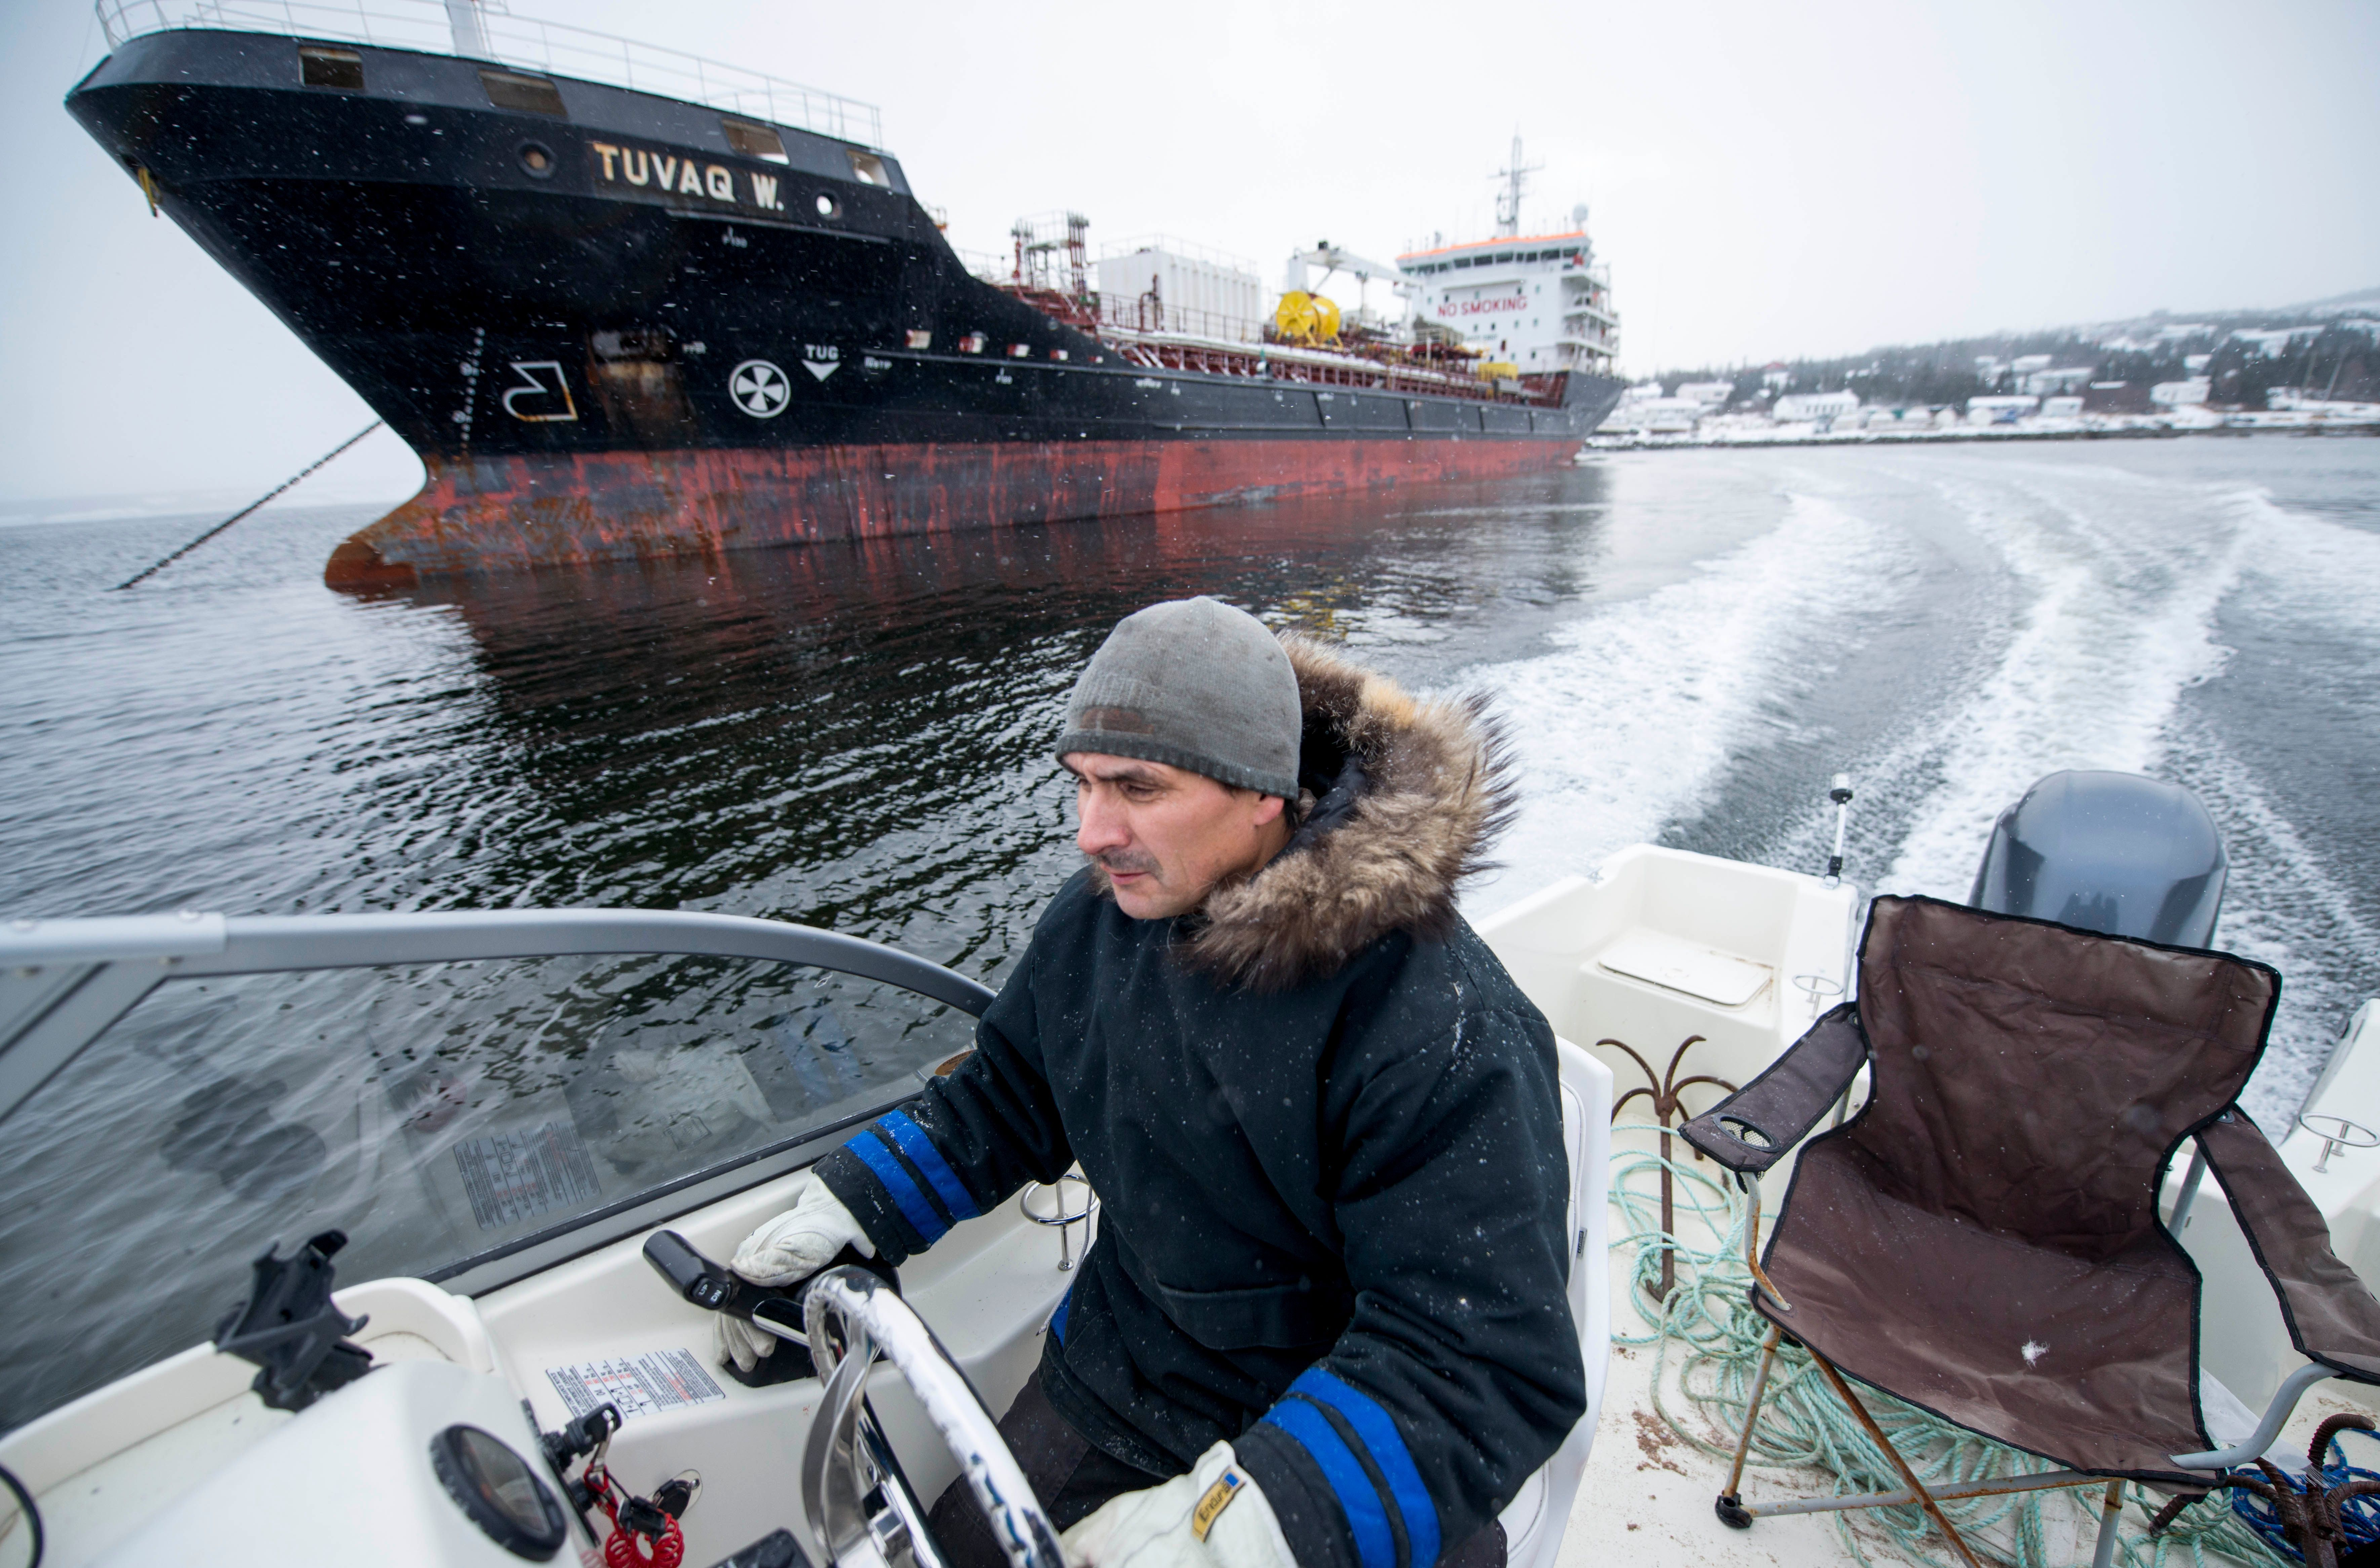 Karl Michelin speeds past a fuel tanker docked at the Rigolet dock for one of two yearly fuel drops on November 10, 2019. Image by Michael G. Seamans. Canada, 2019.